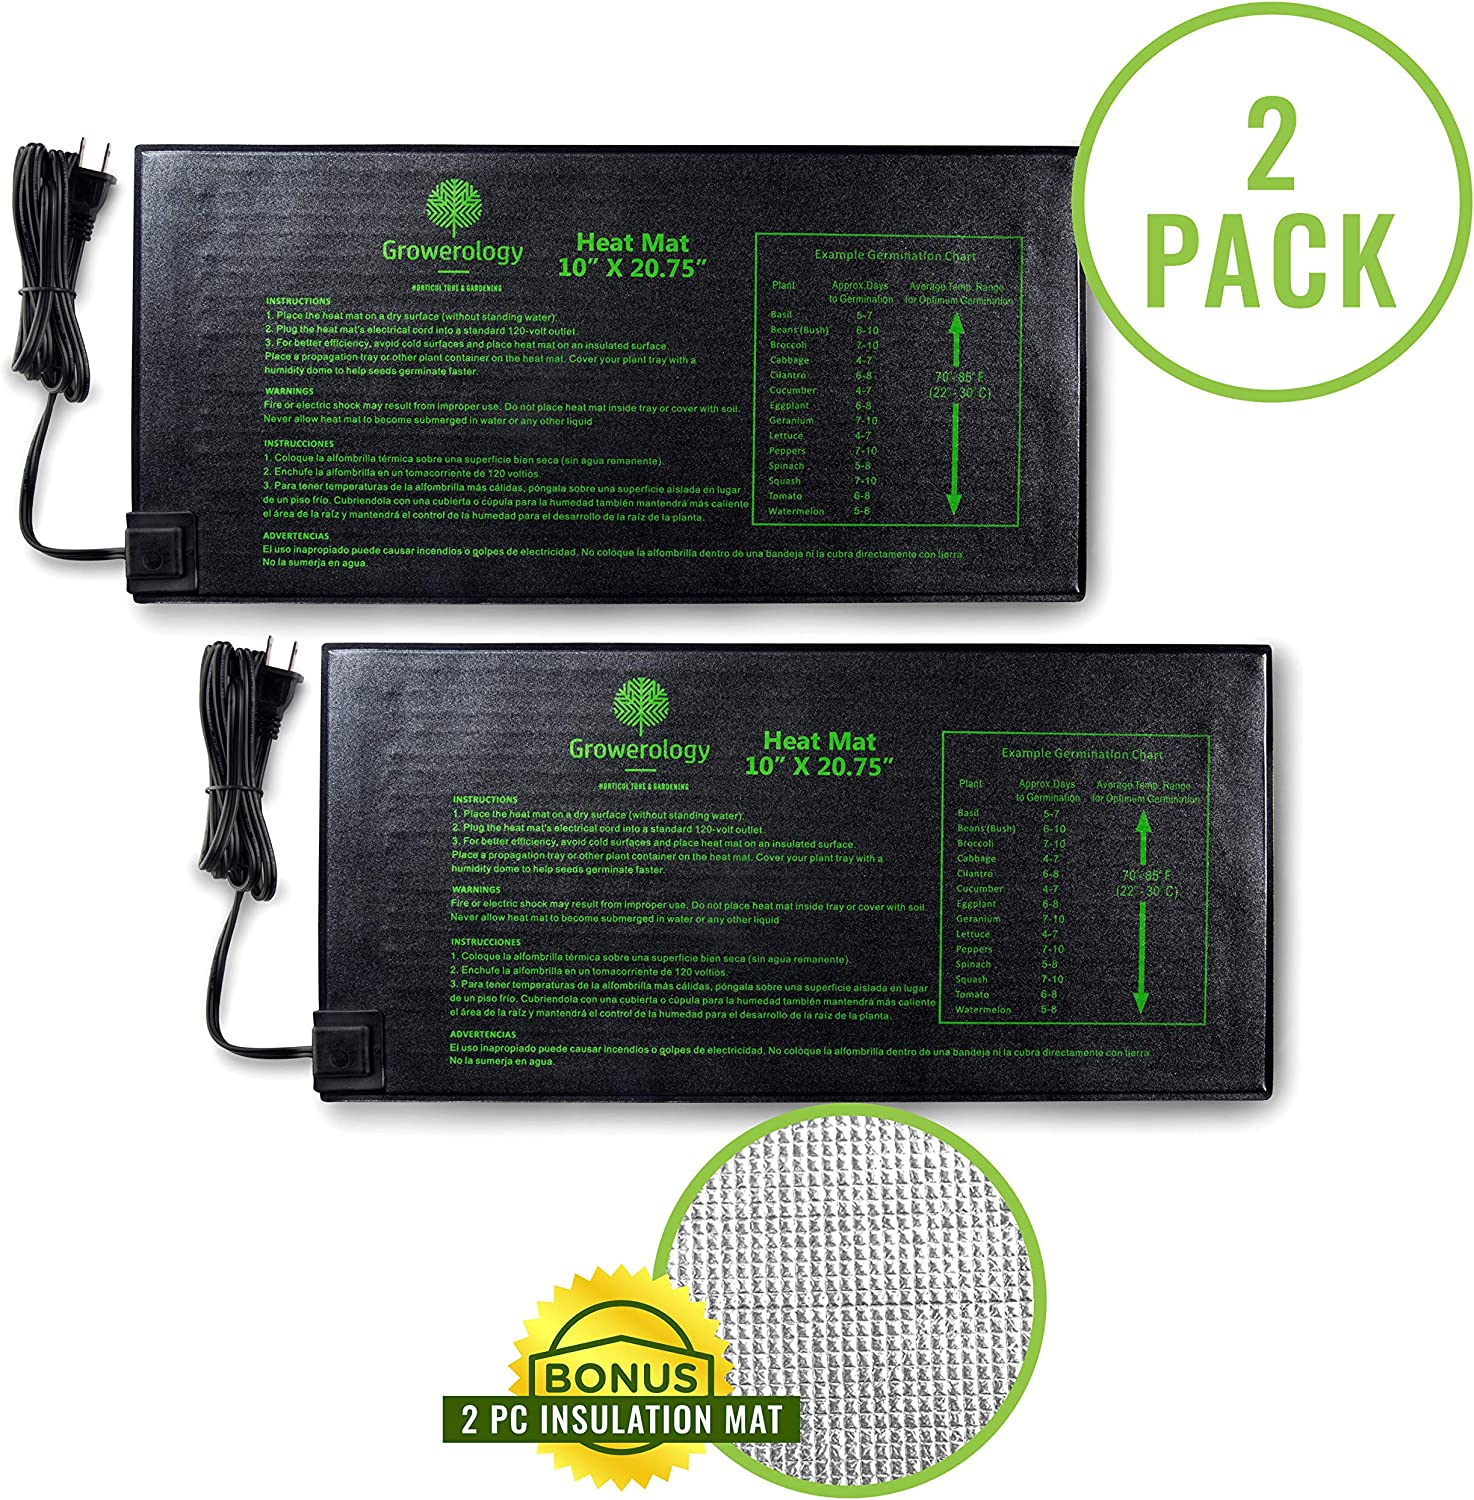 "Growerology Seedling Heat Mat (2 Pack: 10"" x 20.75"") for Seed Germination, Hydroponics and Plant Propagation - MET Certified Plant Heating Pad for Indoor and Outdoor Home Gardening Seed Starter Kit"